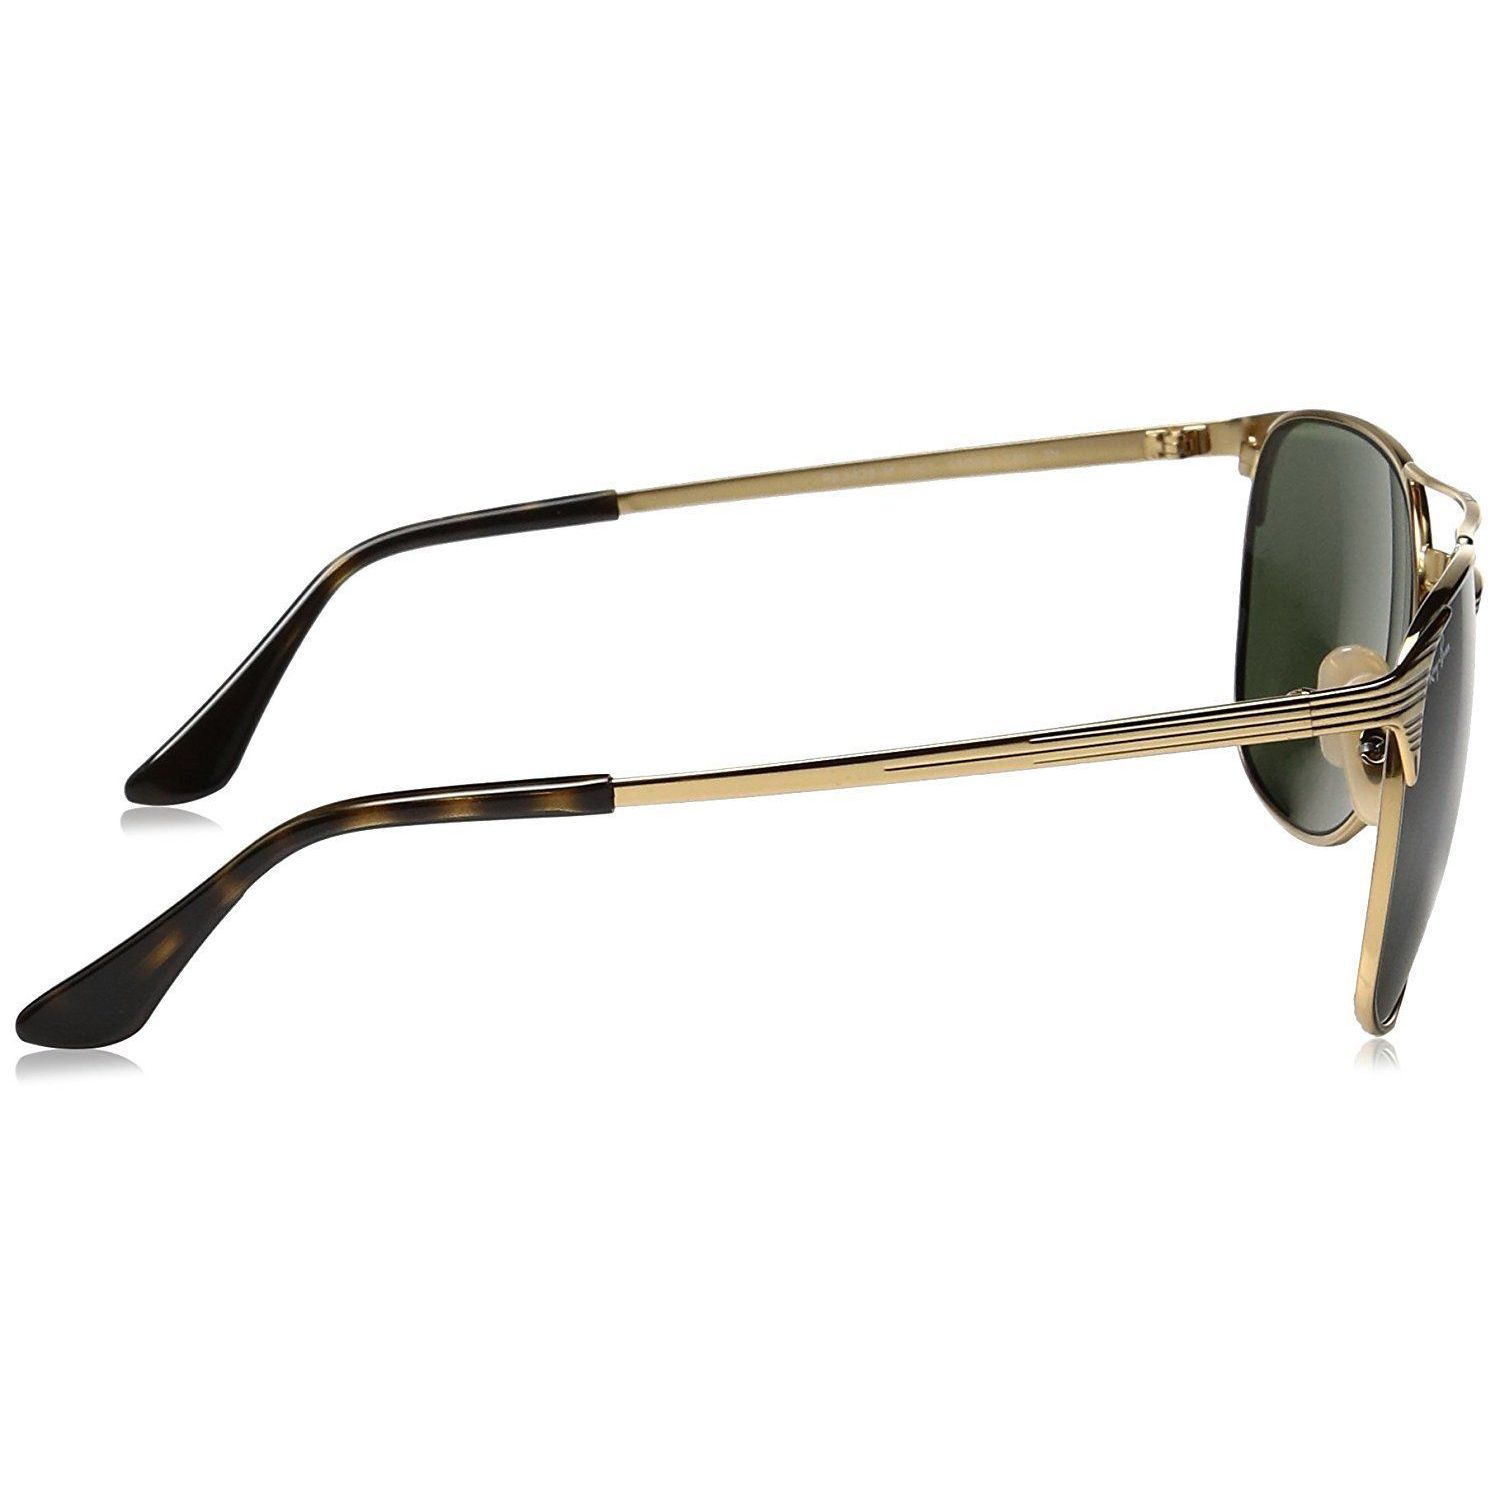 a9be4c349e Shop Ray-Ban RB3429M 001 Men s Signet Gold Frame Green Classic Lens  Sunglasses - Free Shipping Today - Overstock - 15002667